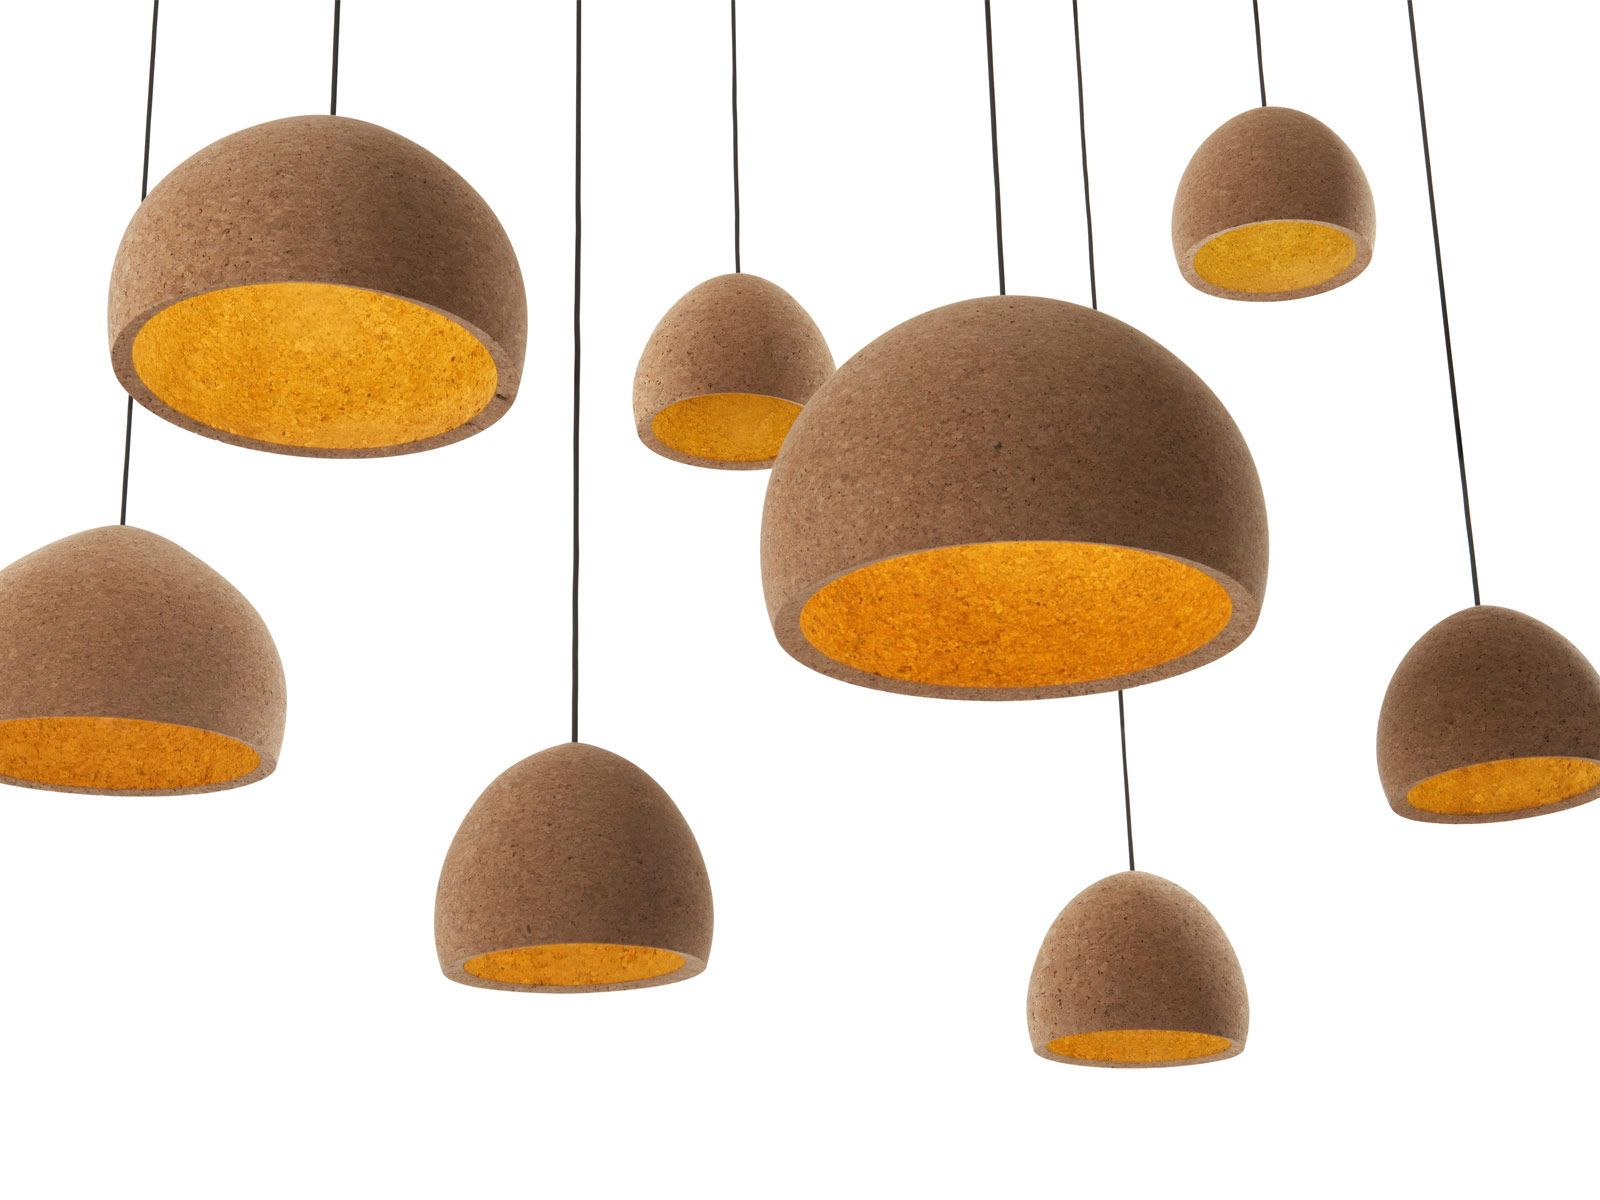 wood pendant lighting. Float, Cork Pendant Lights By Benjamin Hubert Wood Lighting